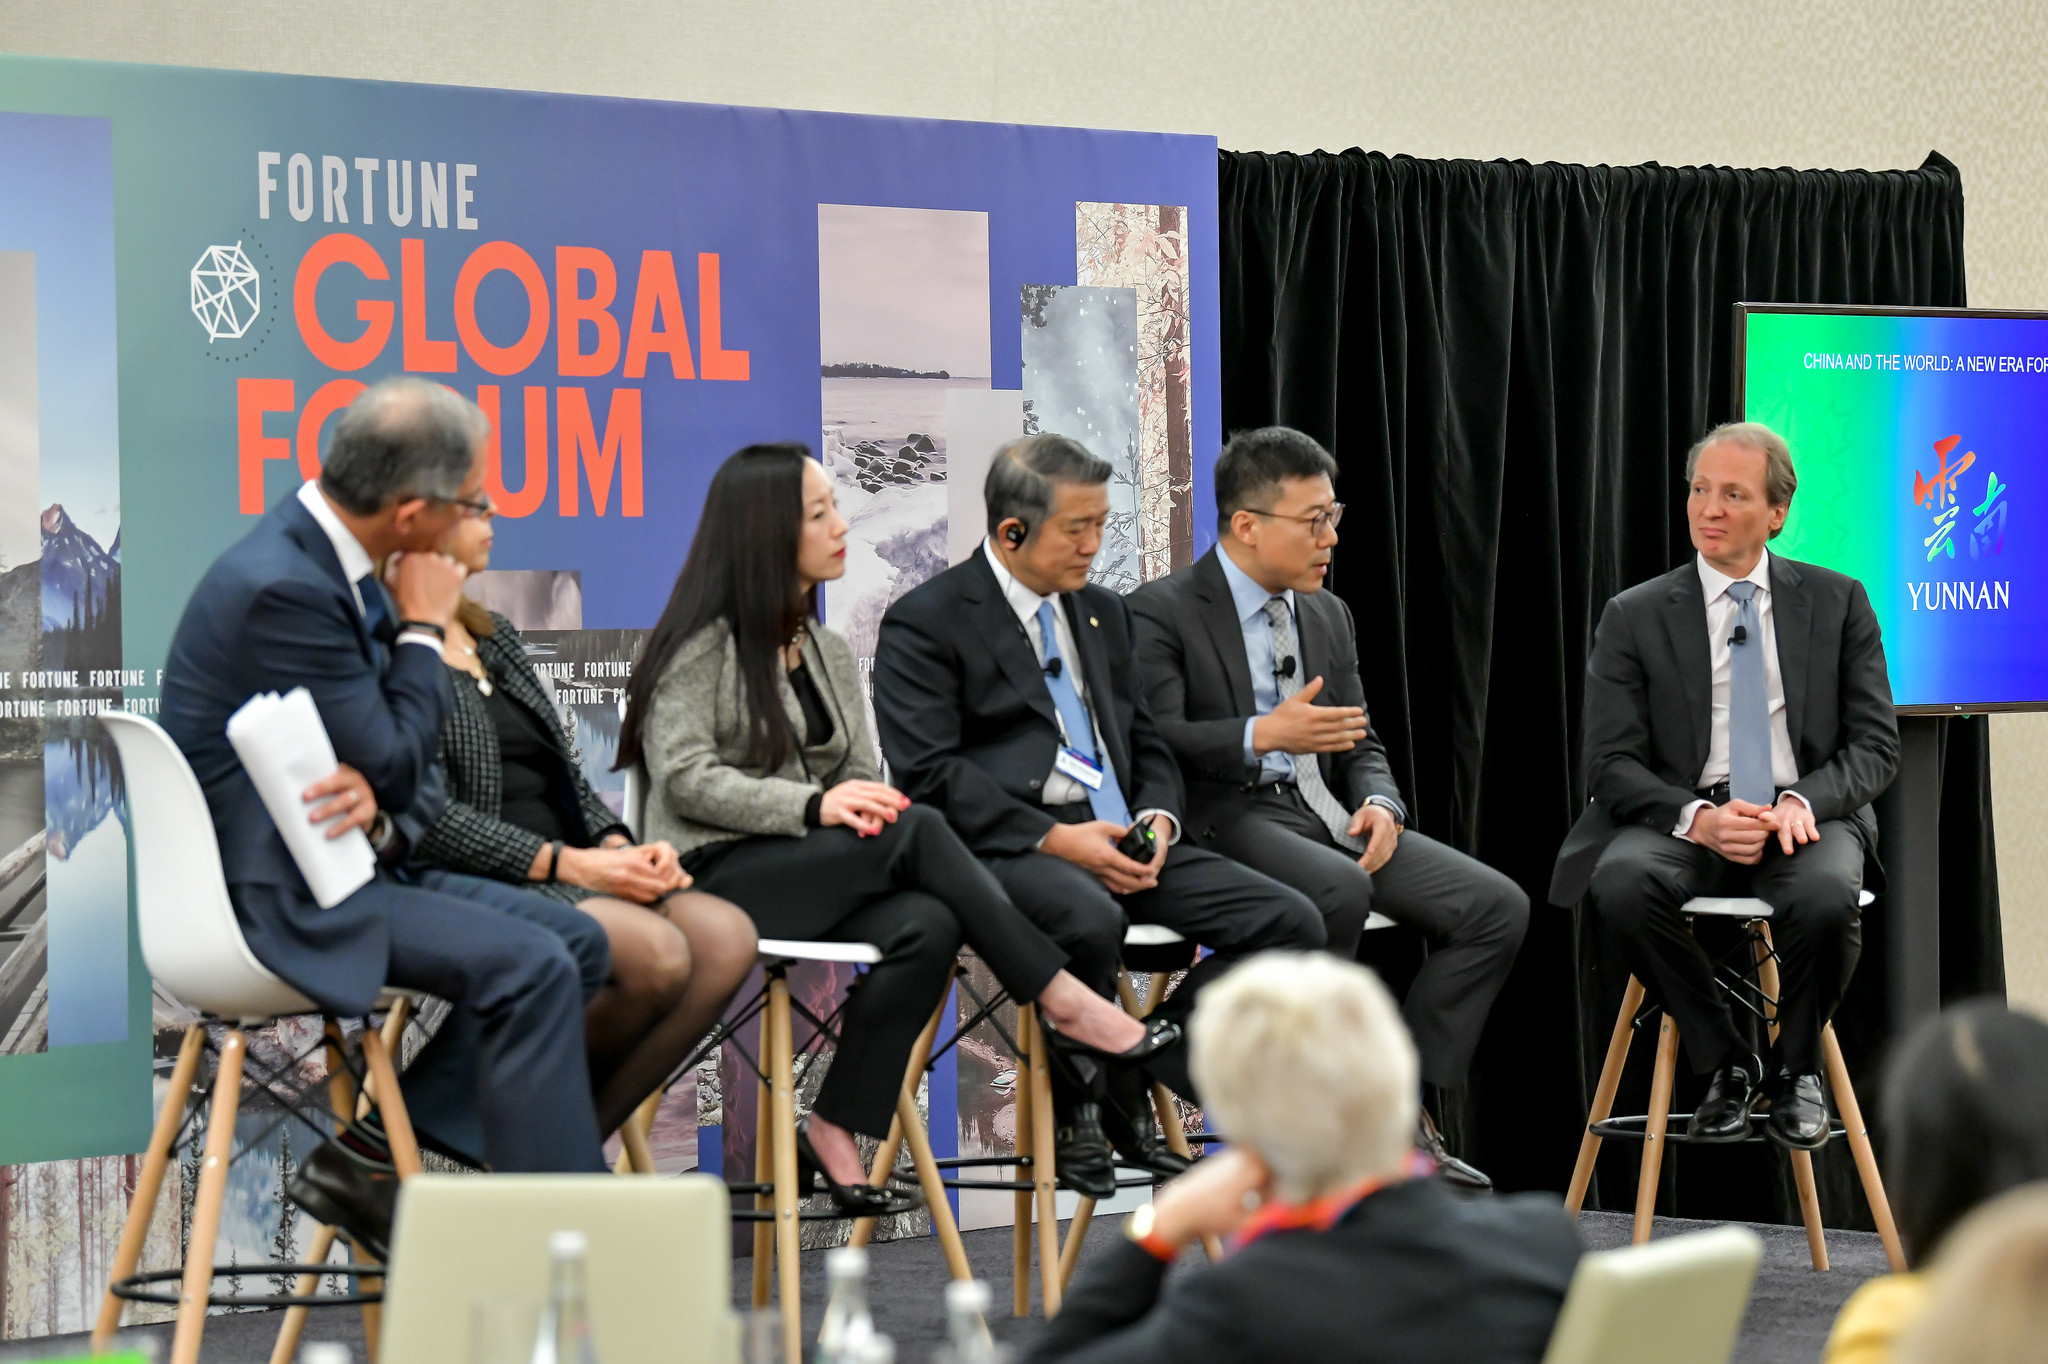 Fortune Global Forum meeting in Toronto on October 15, 2018.